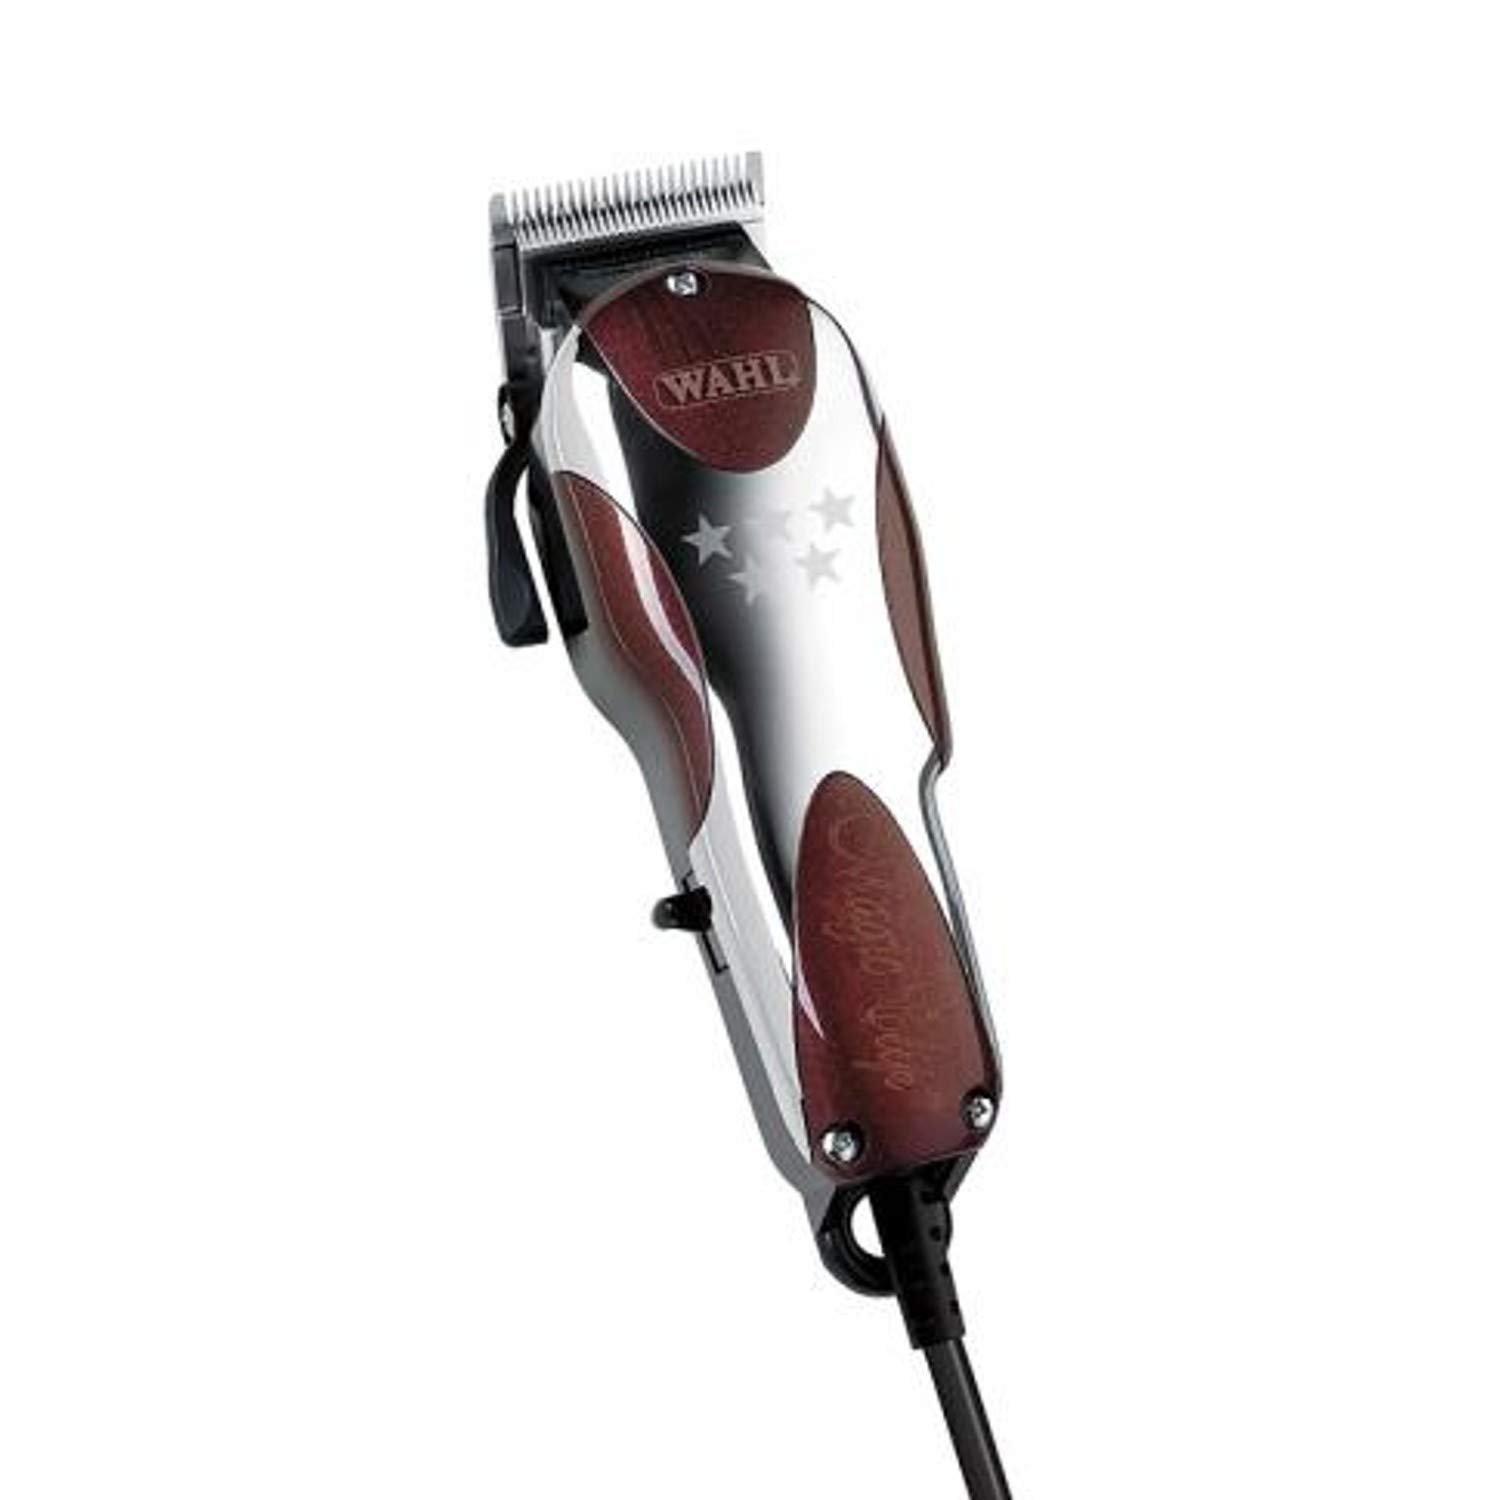 Wahl Professional 5-Star Magic Clip #8451 – Great for Barbers and Stylists – Precision Fade Clipper with Zero Overlap Adjustable Blades, V9000 Cool-Running Motor, Variable Taper and Texture Settings : Beauty & Personal Care